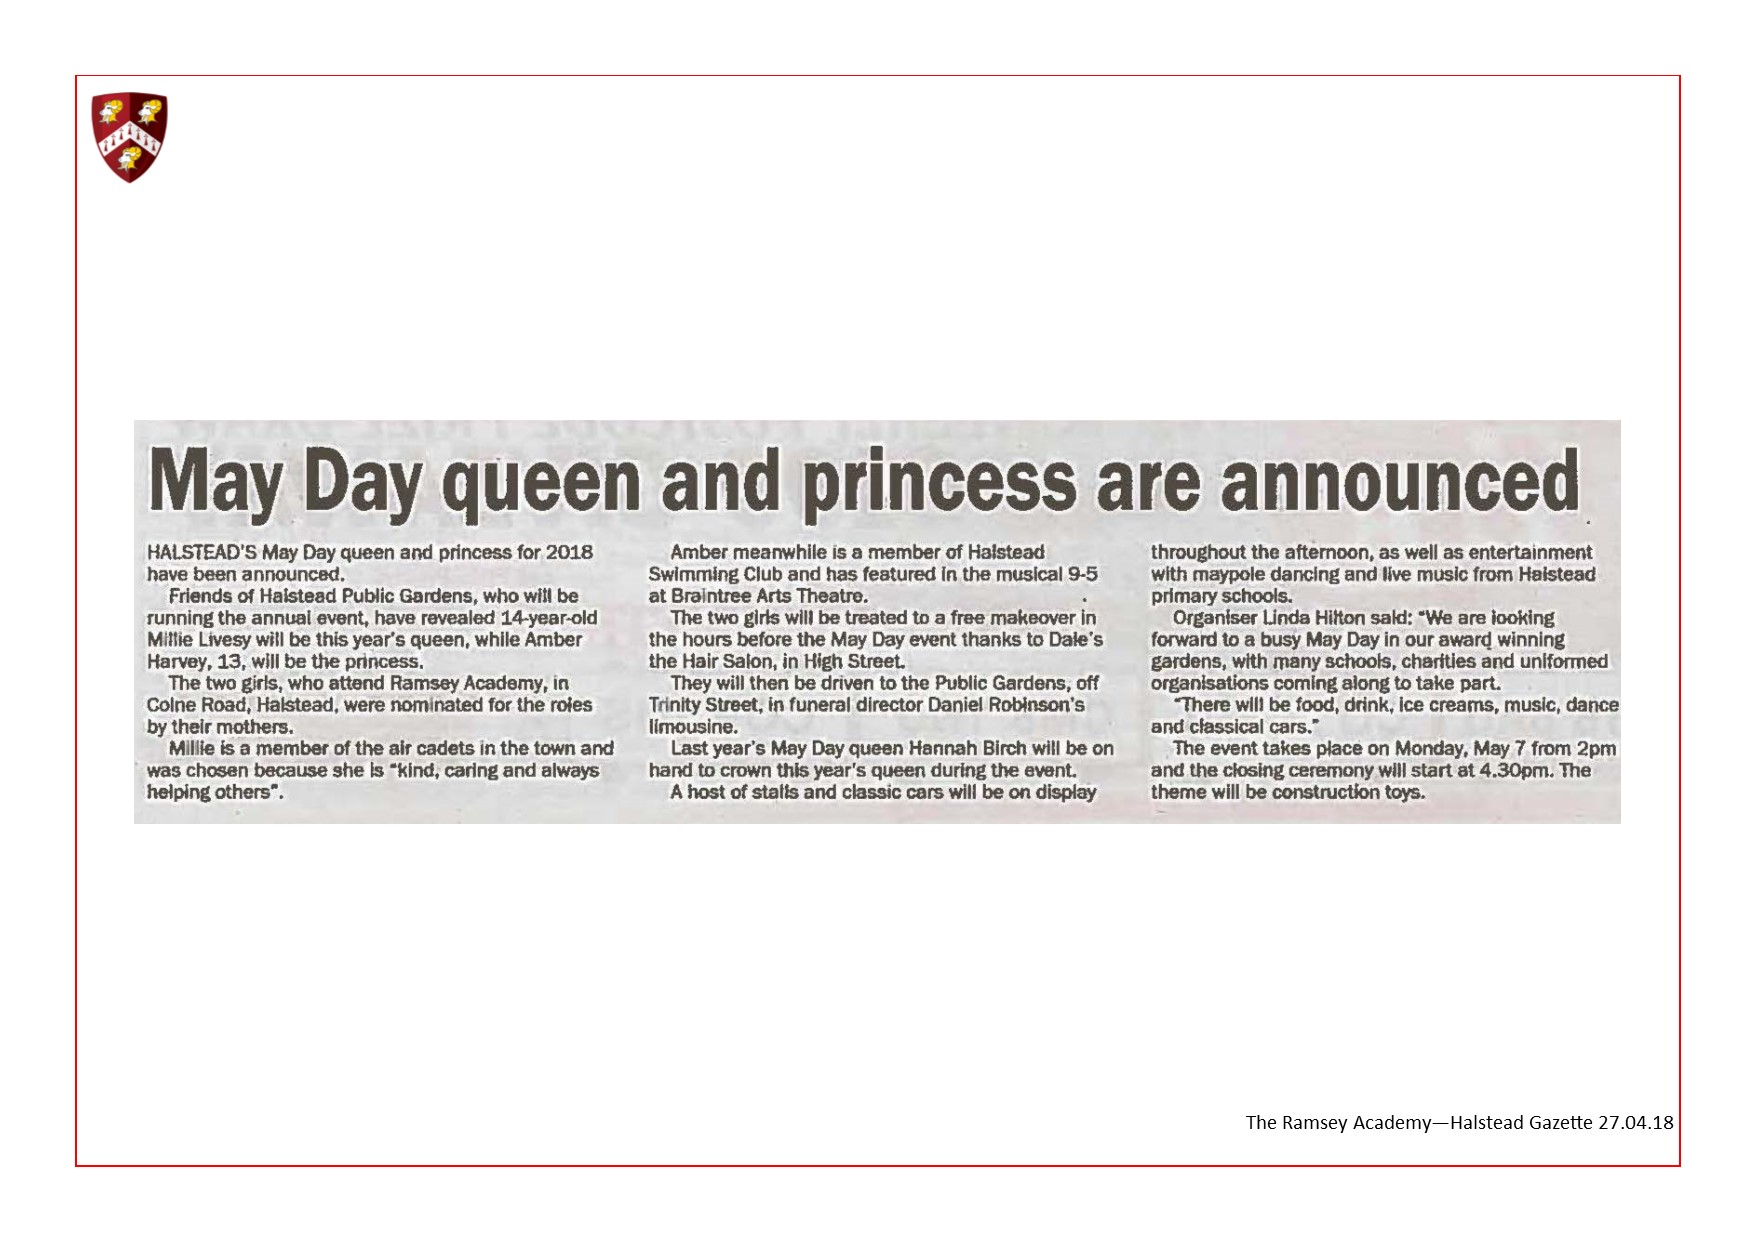 May Day Queen And Princess Are Announced 27.04.18